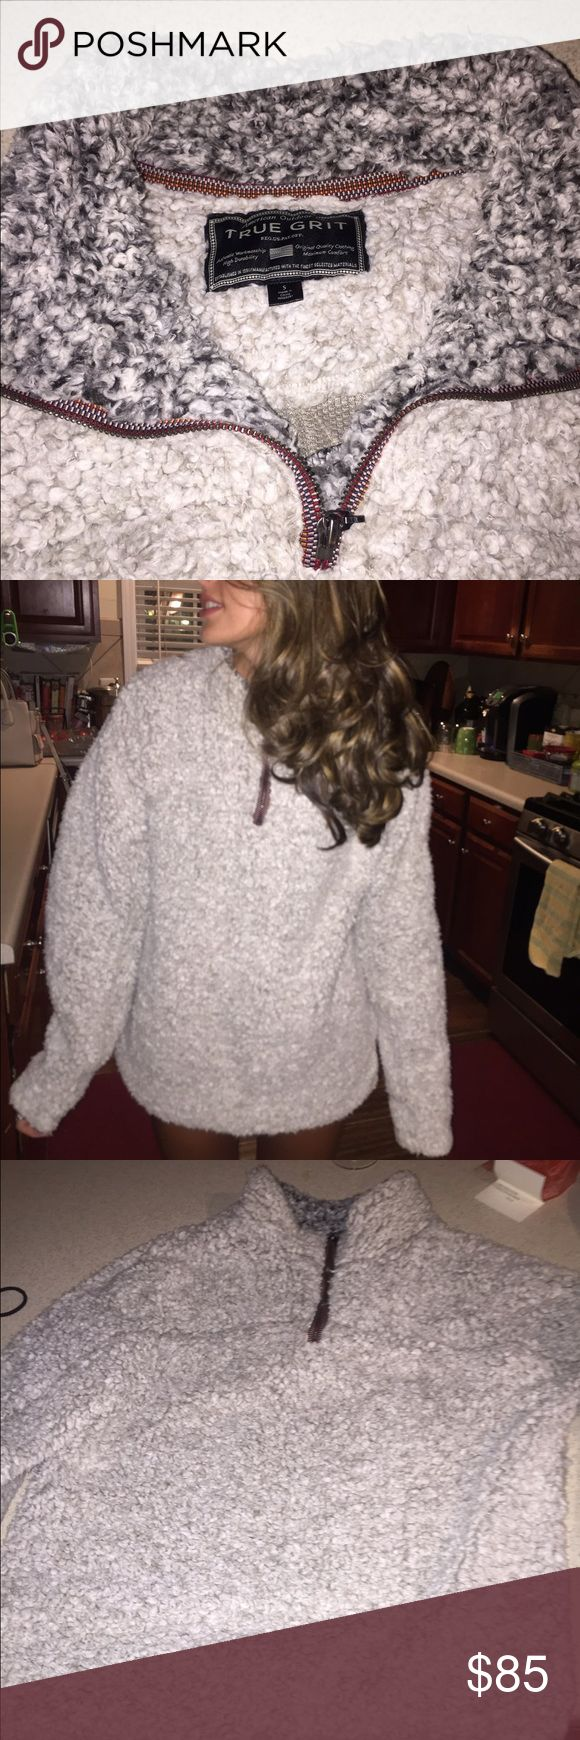 True Grit Pullover worn once, perfect condition. Jackets & Coats